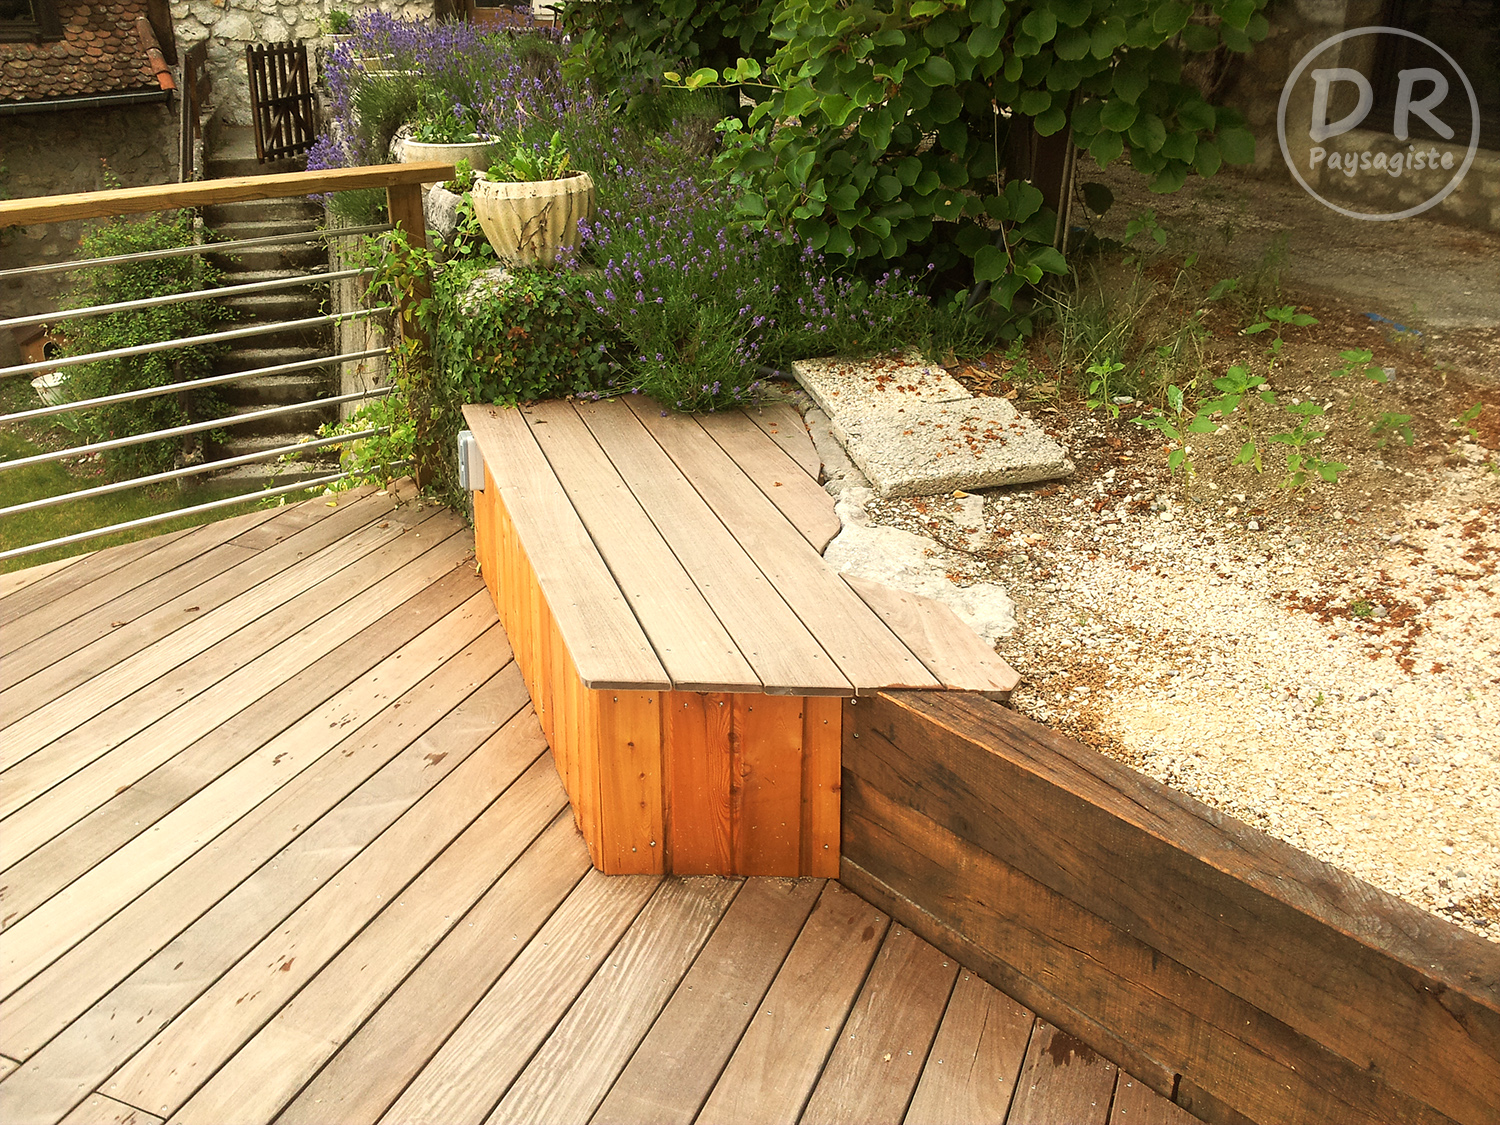 Terrasse bois ip barri re banc david robert paysagiste - Barriere bois terrasse ...